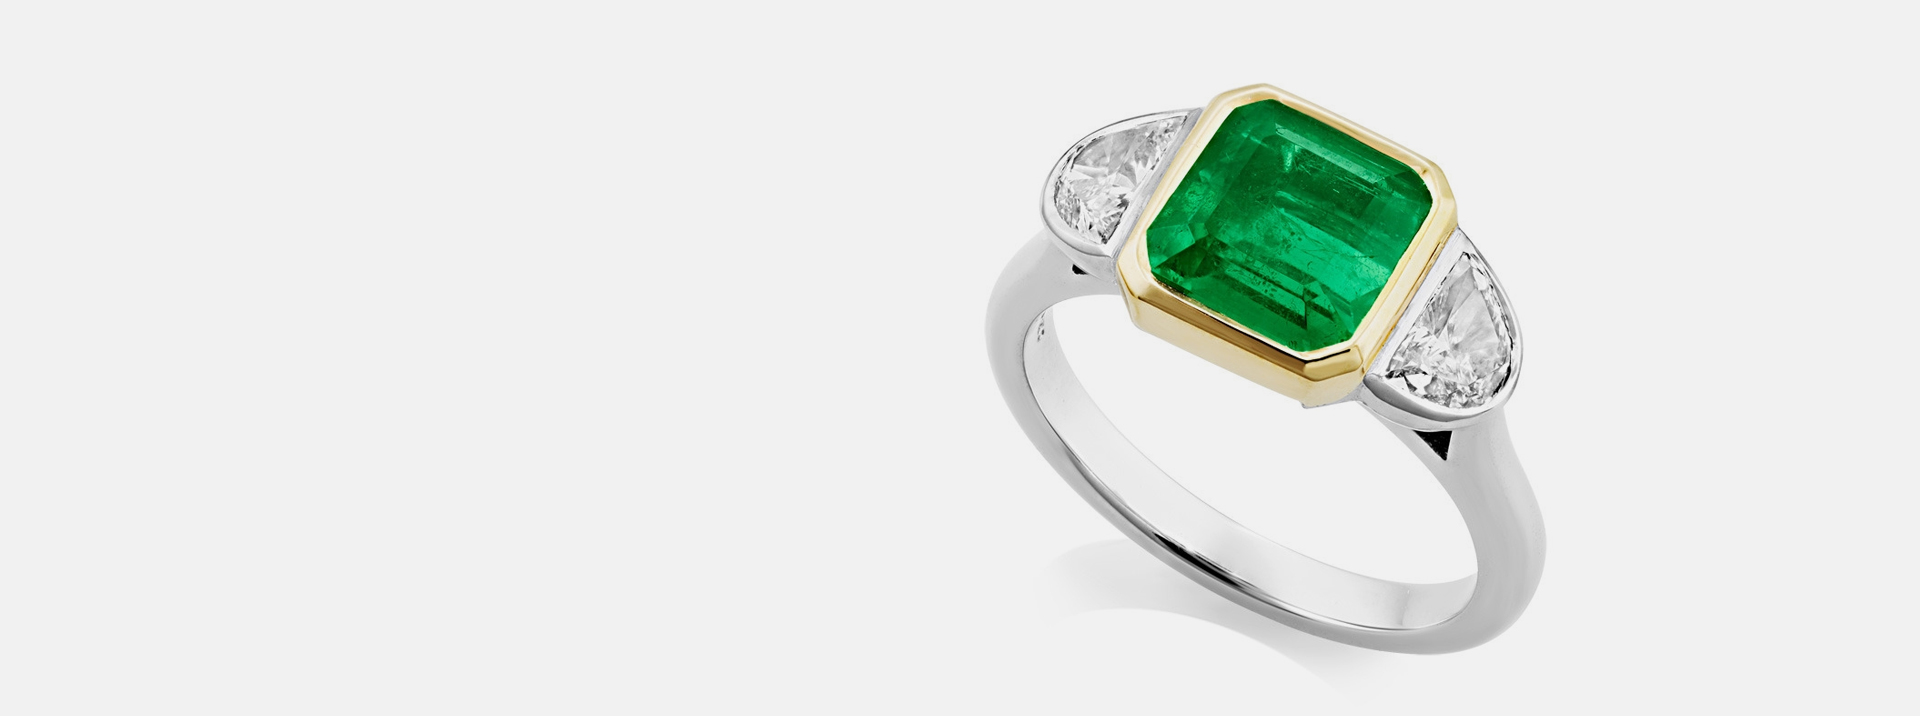 Art Deco STYLE EMERALD RING from Sheldon Bloomfield